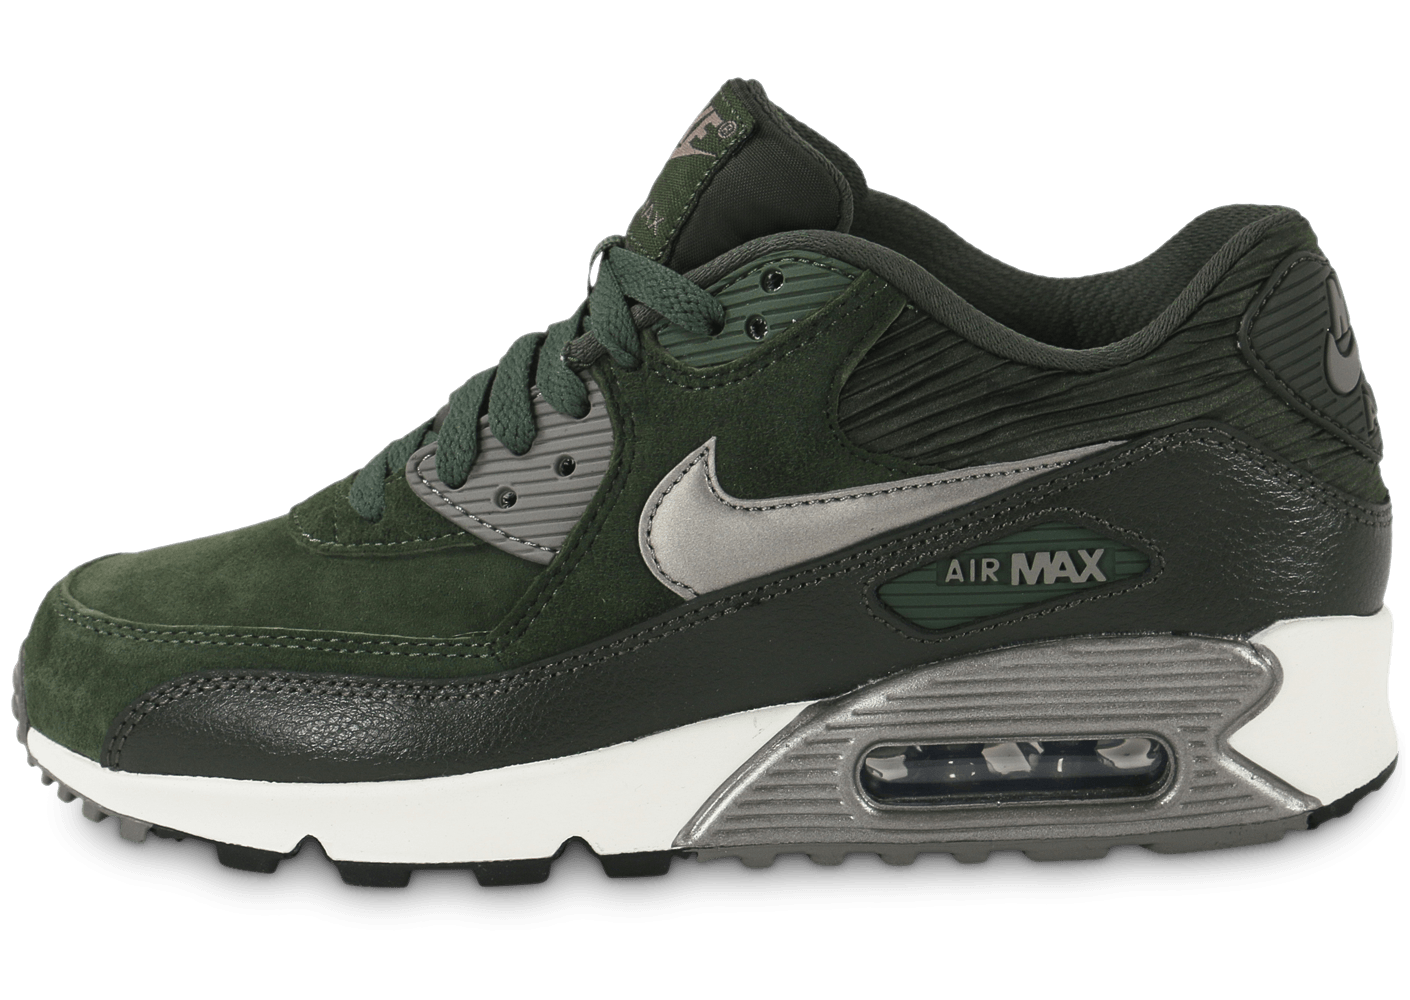 air max chaussures nike nike air max 2010 communiqu. Black Bedroom Furniture Sets. Home Design Ideas